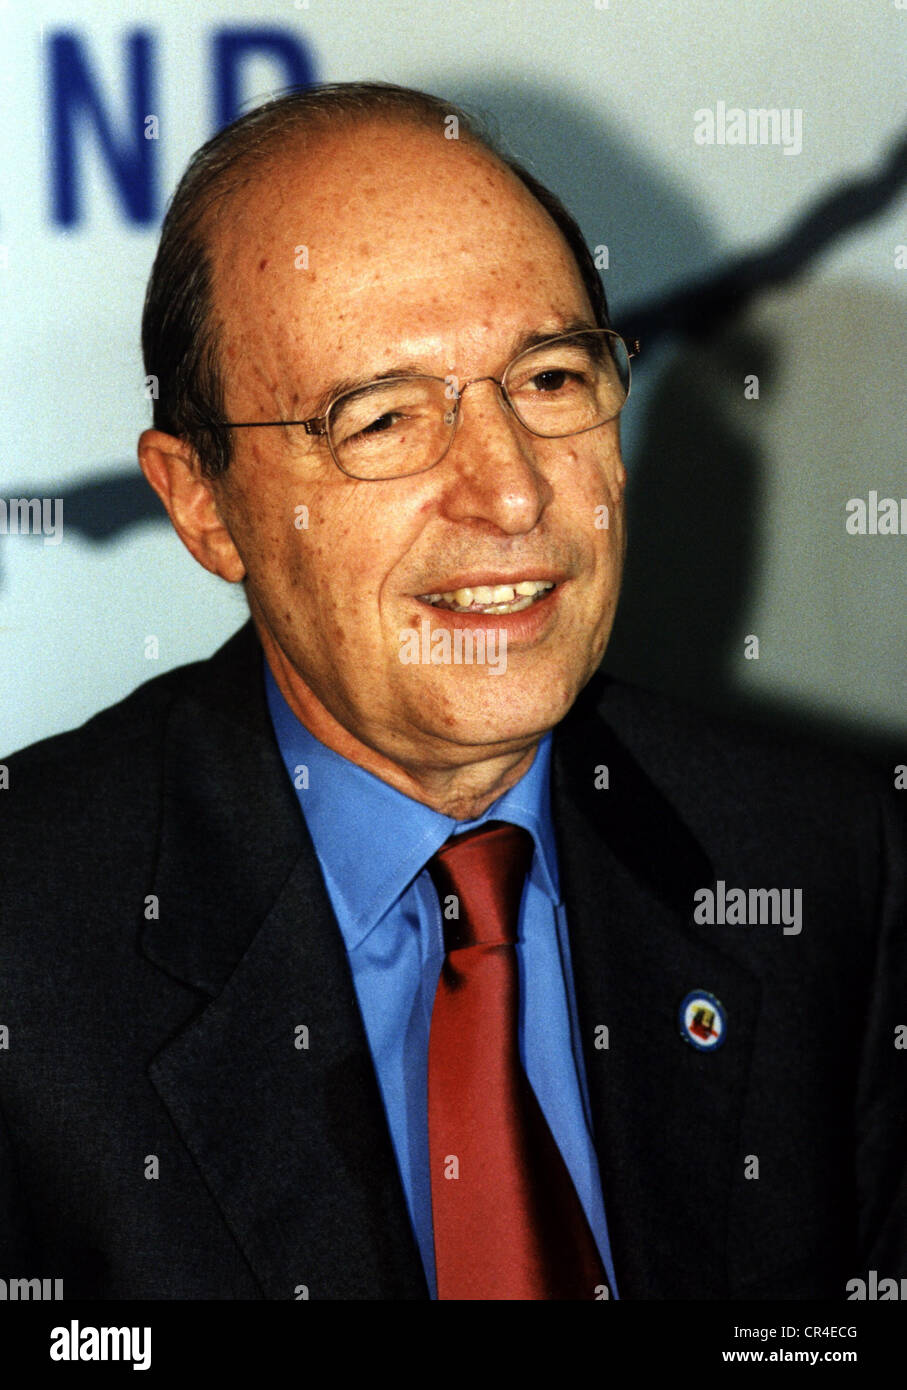 Simitis, Konstantinos, 23.6.1936, Greek politician, portrait, as Prime Minister of Greece, 2000, Additional-Rights - Stock Image